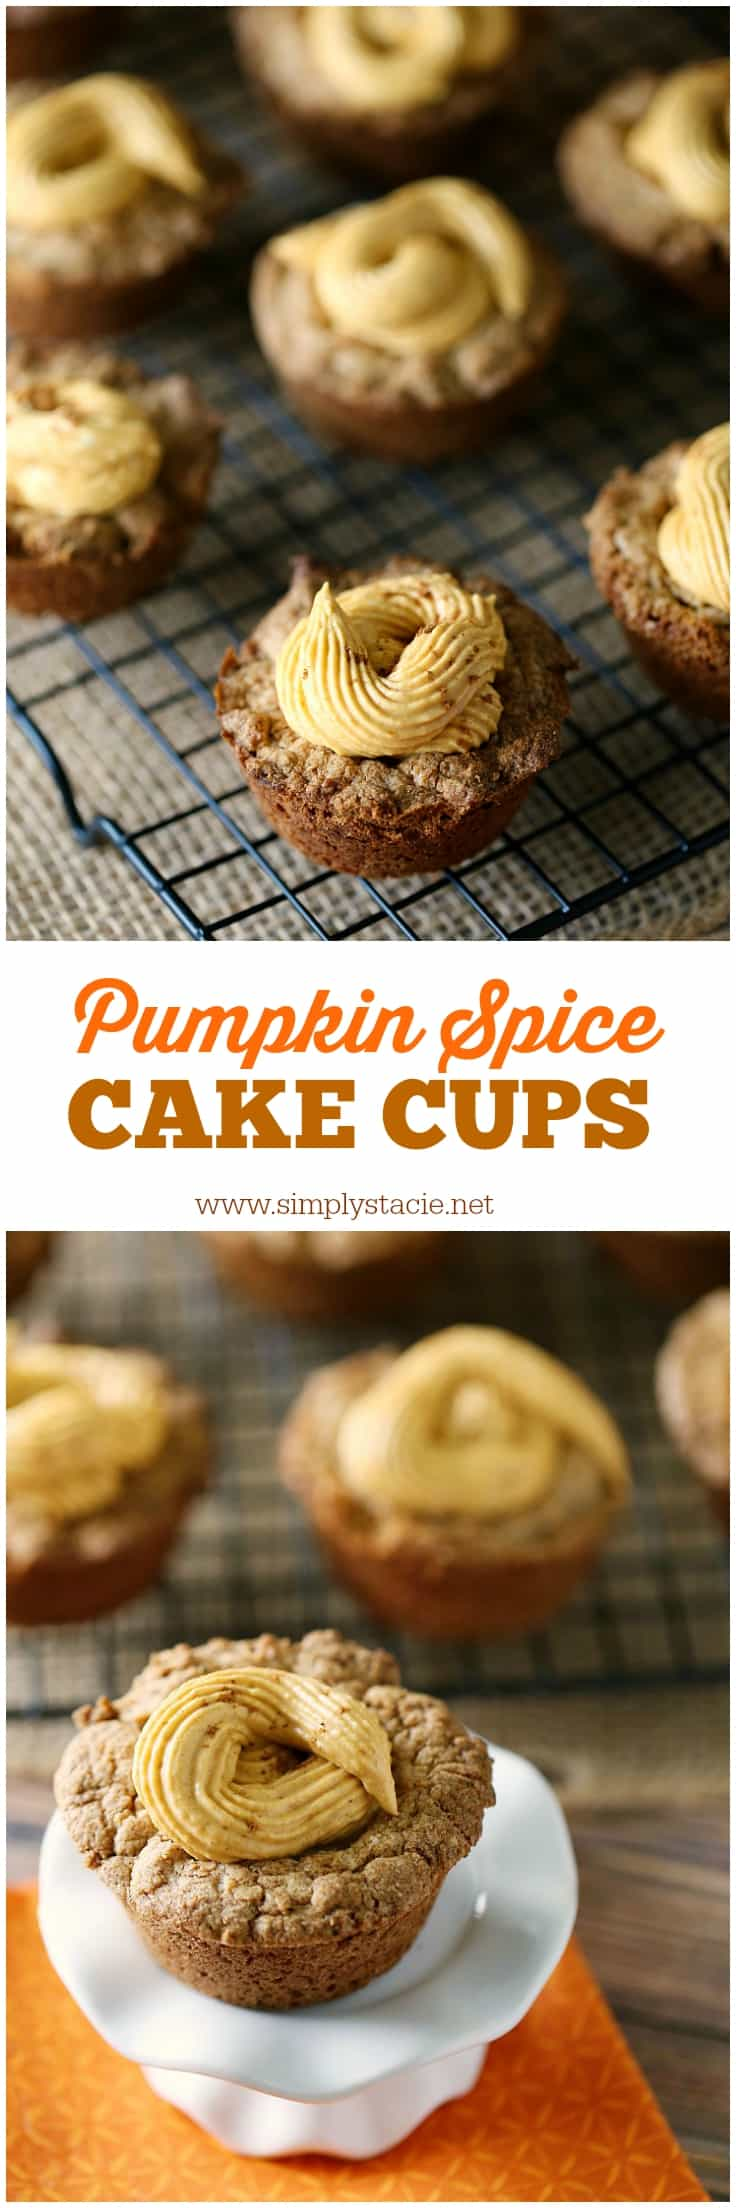 Pumpkin Spice Cake Cups - Indulge in a batch of this delicious fall dessert. This recipe will not easily be forgotten!